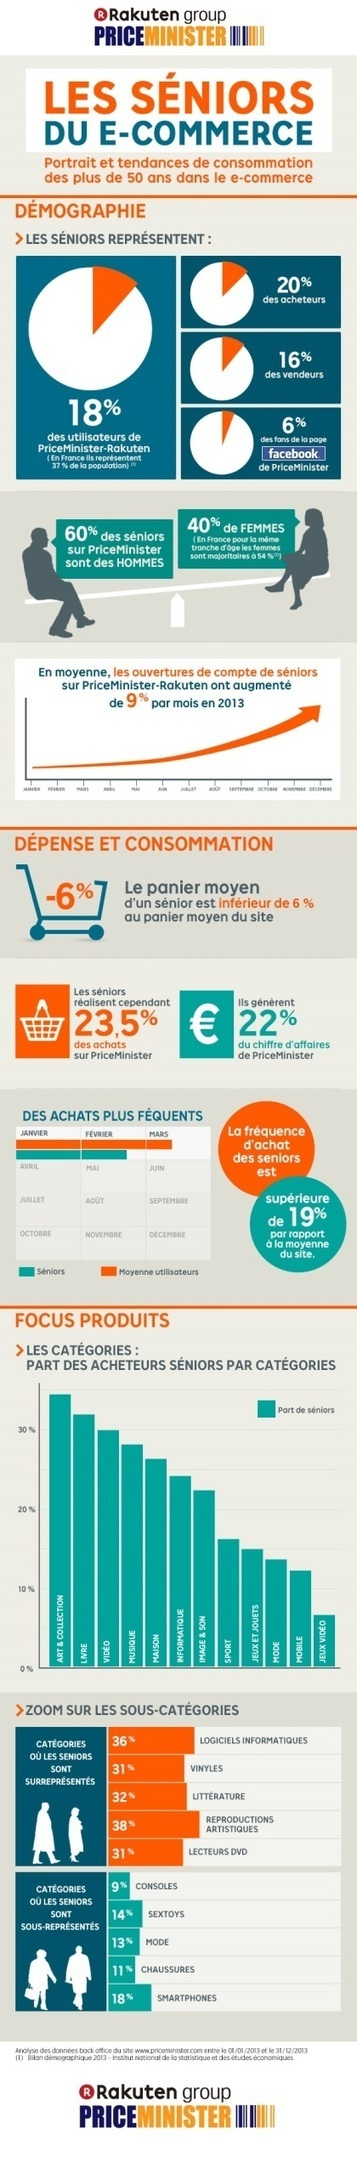 Infographie : les seniors, ces grands cyberacheteurs | sondage | Scoop.it